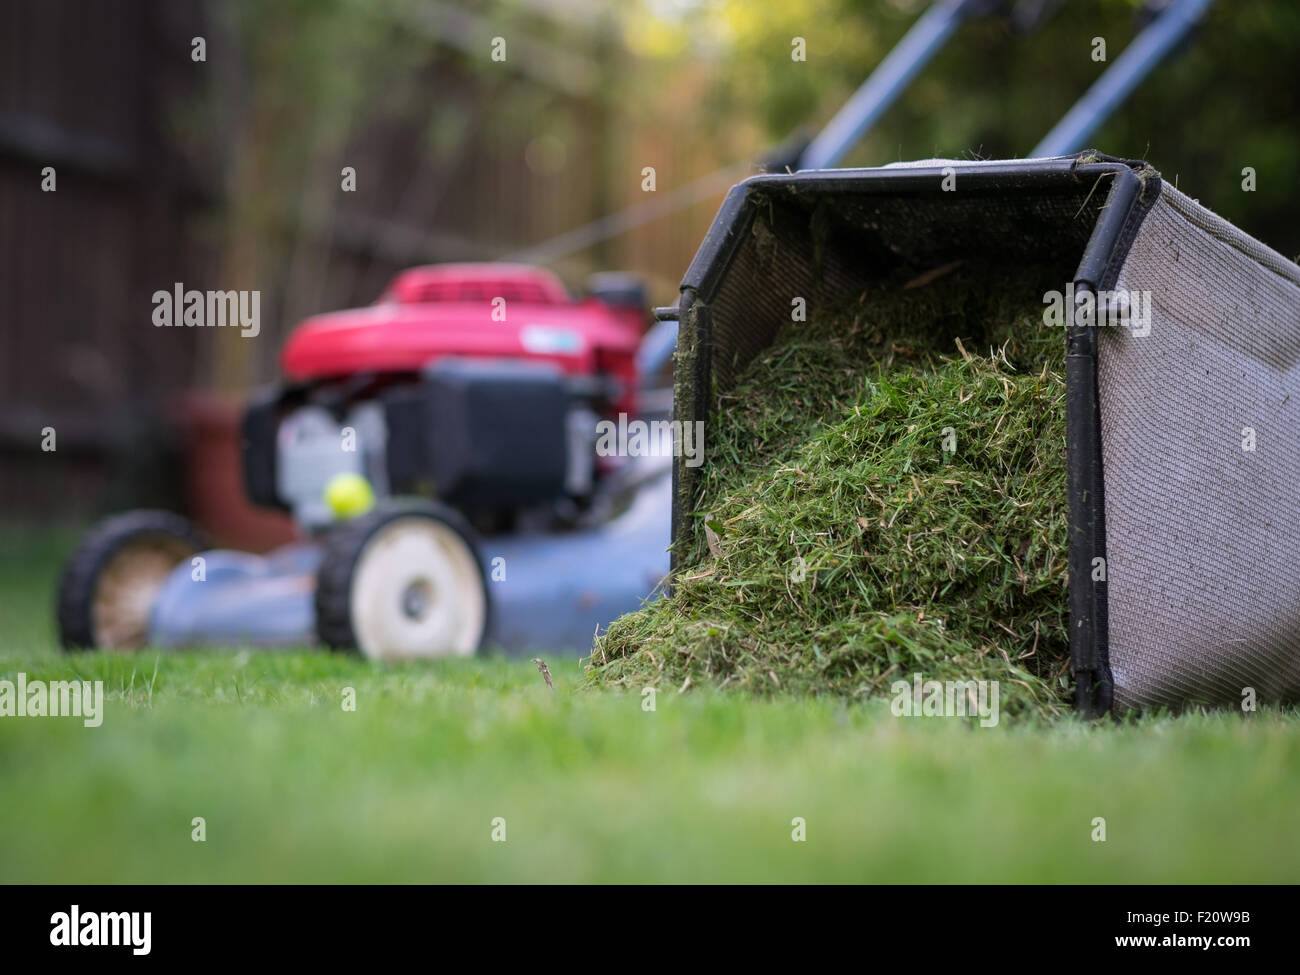 Grass cuttings from the lawnmower after cutting the grass - Stock Image